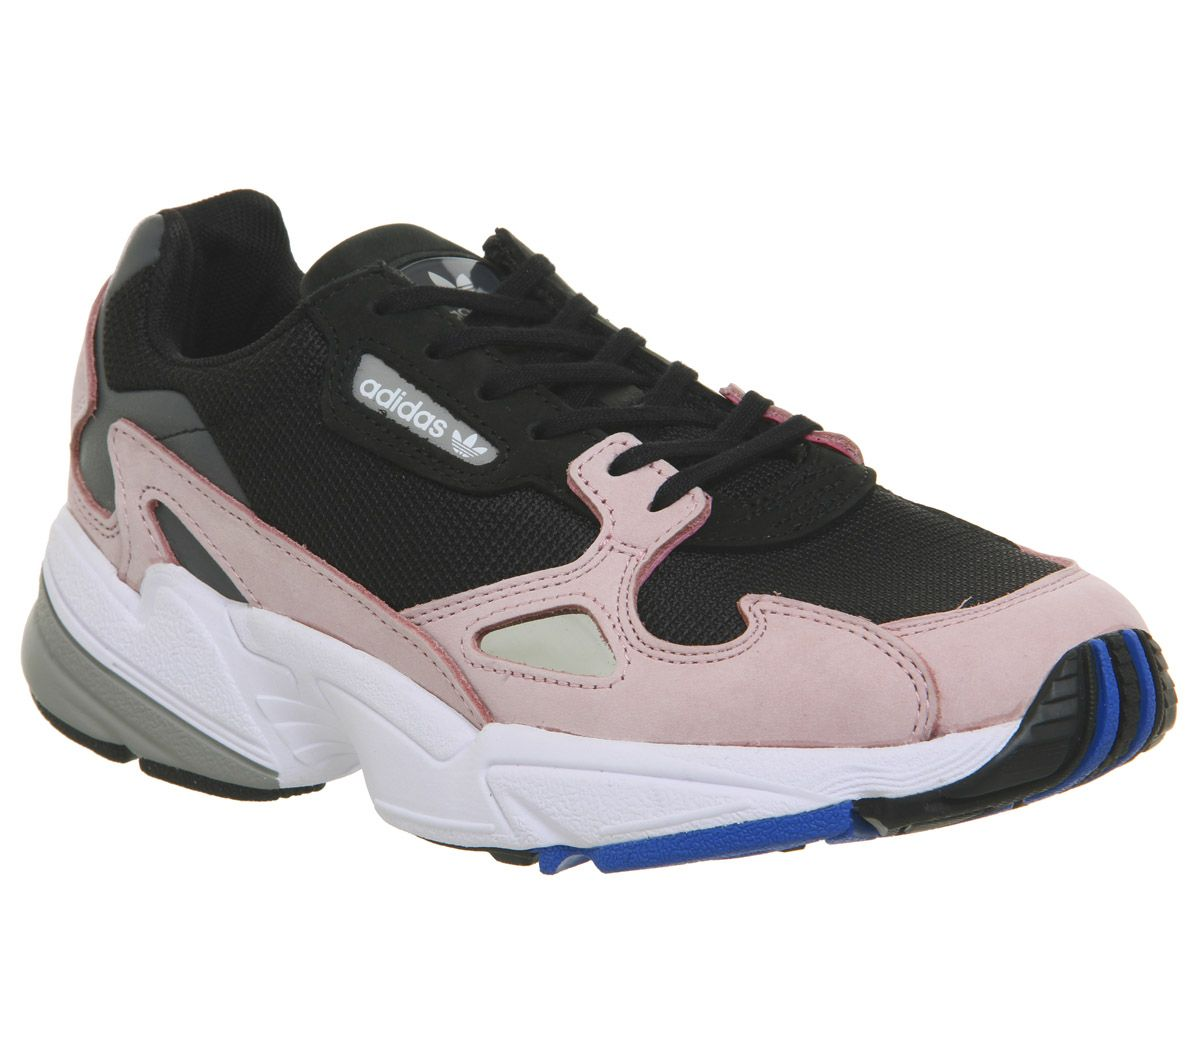 d05e49c22 adidas Falcon Trainers Core Black Light Pink - Hers trainers